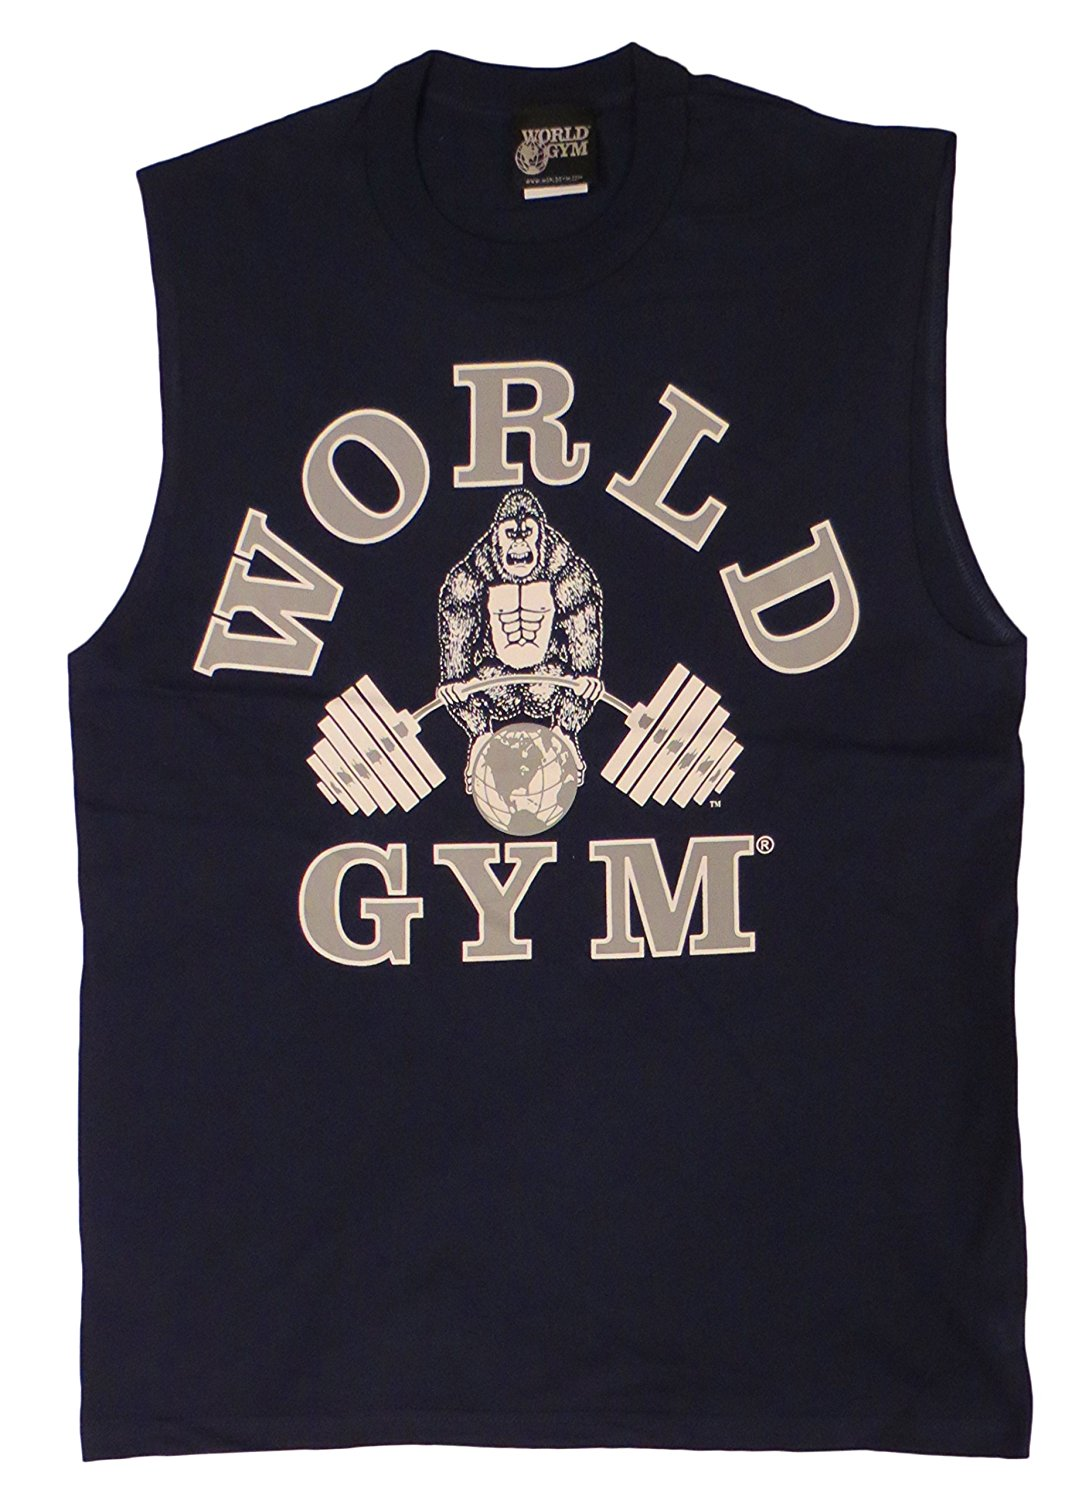 adc46c2e81e3e W190 World Gym Sleeveless Muscle Shirt